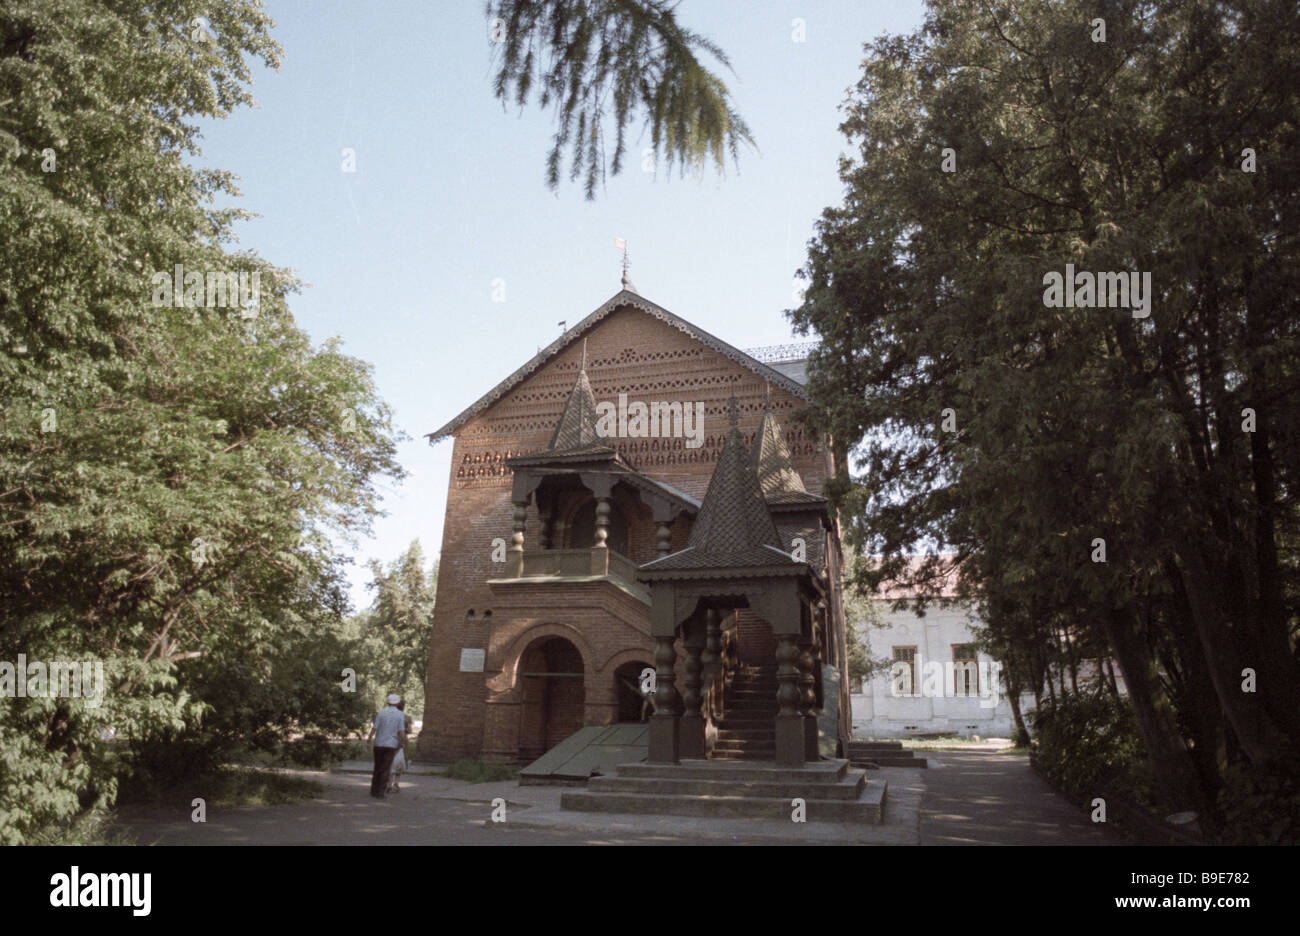 Chambers of Tsarevich Dmitry built in 1482 - Stock Image